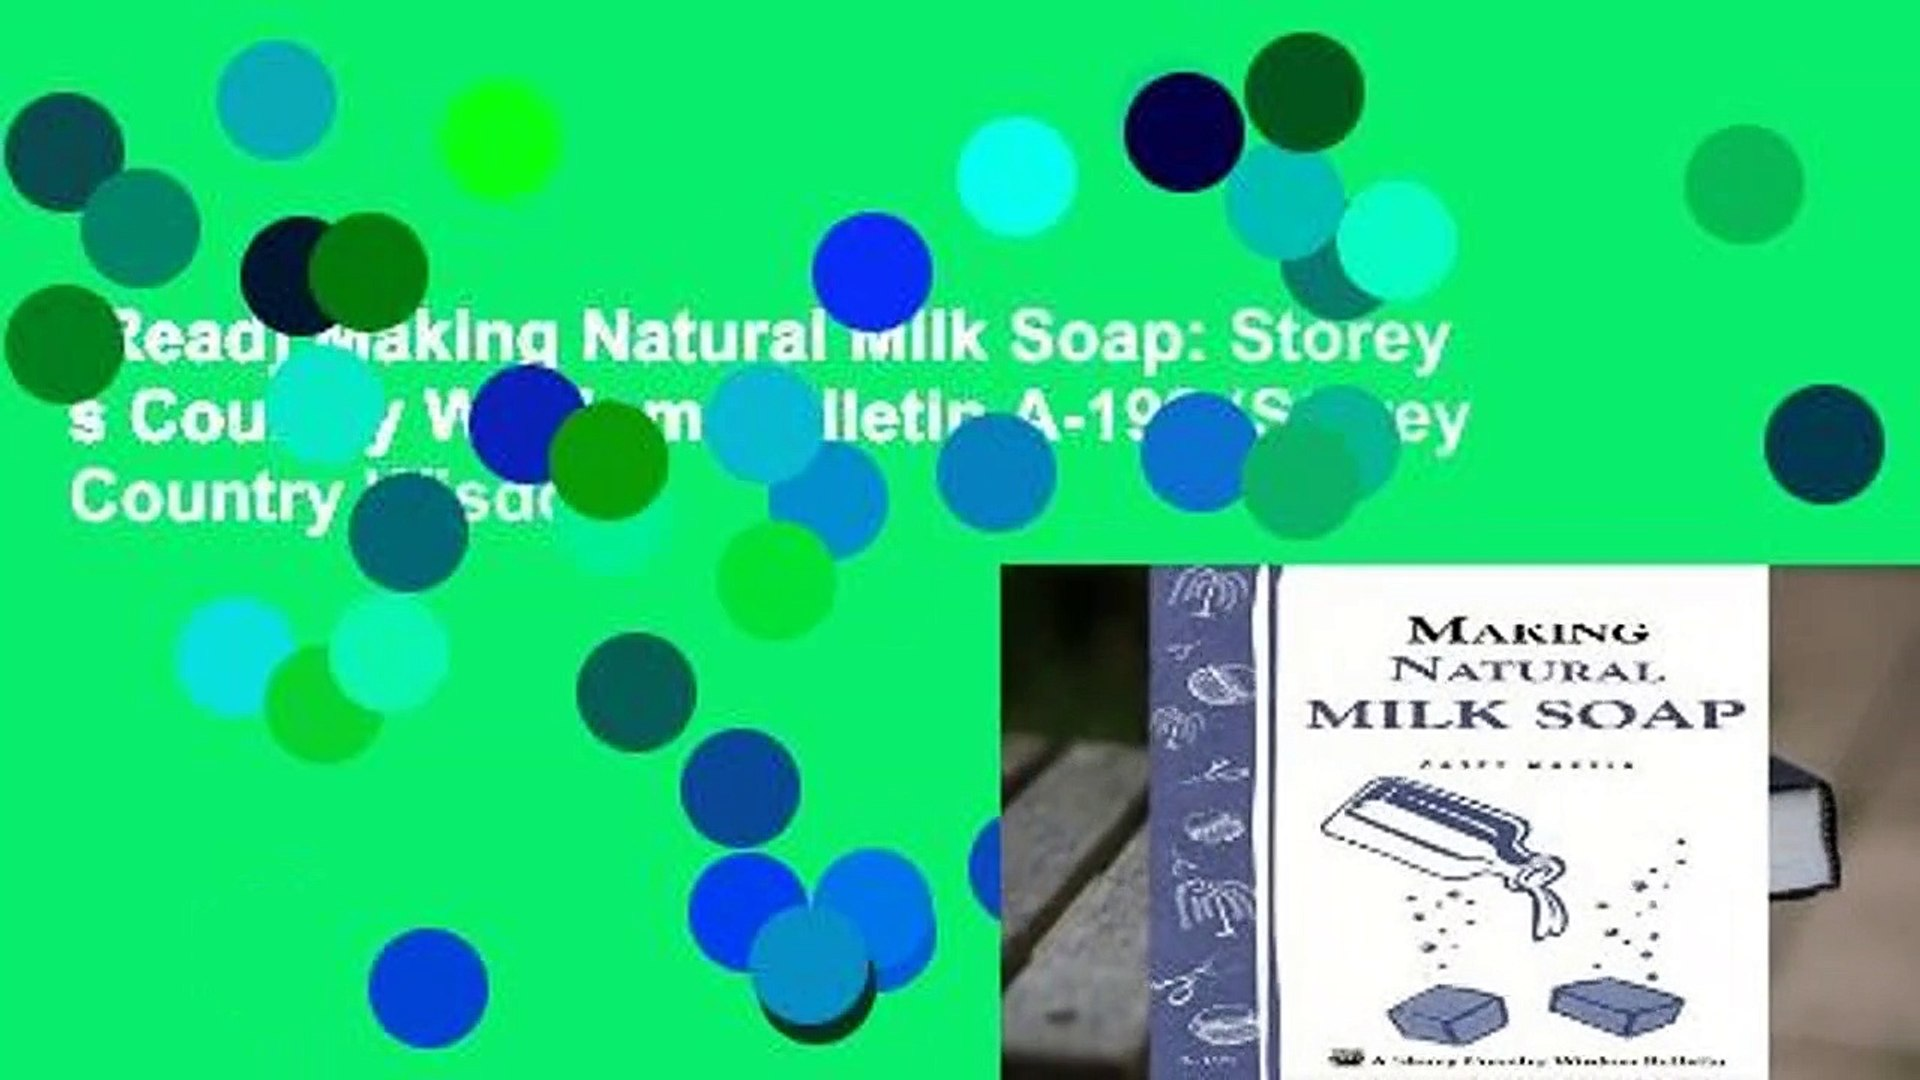 [Read] Making Natural Milk Soap: Storey s Country Wisdom Bulletin A-199 (Storey Country Wisdom